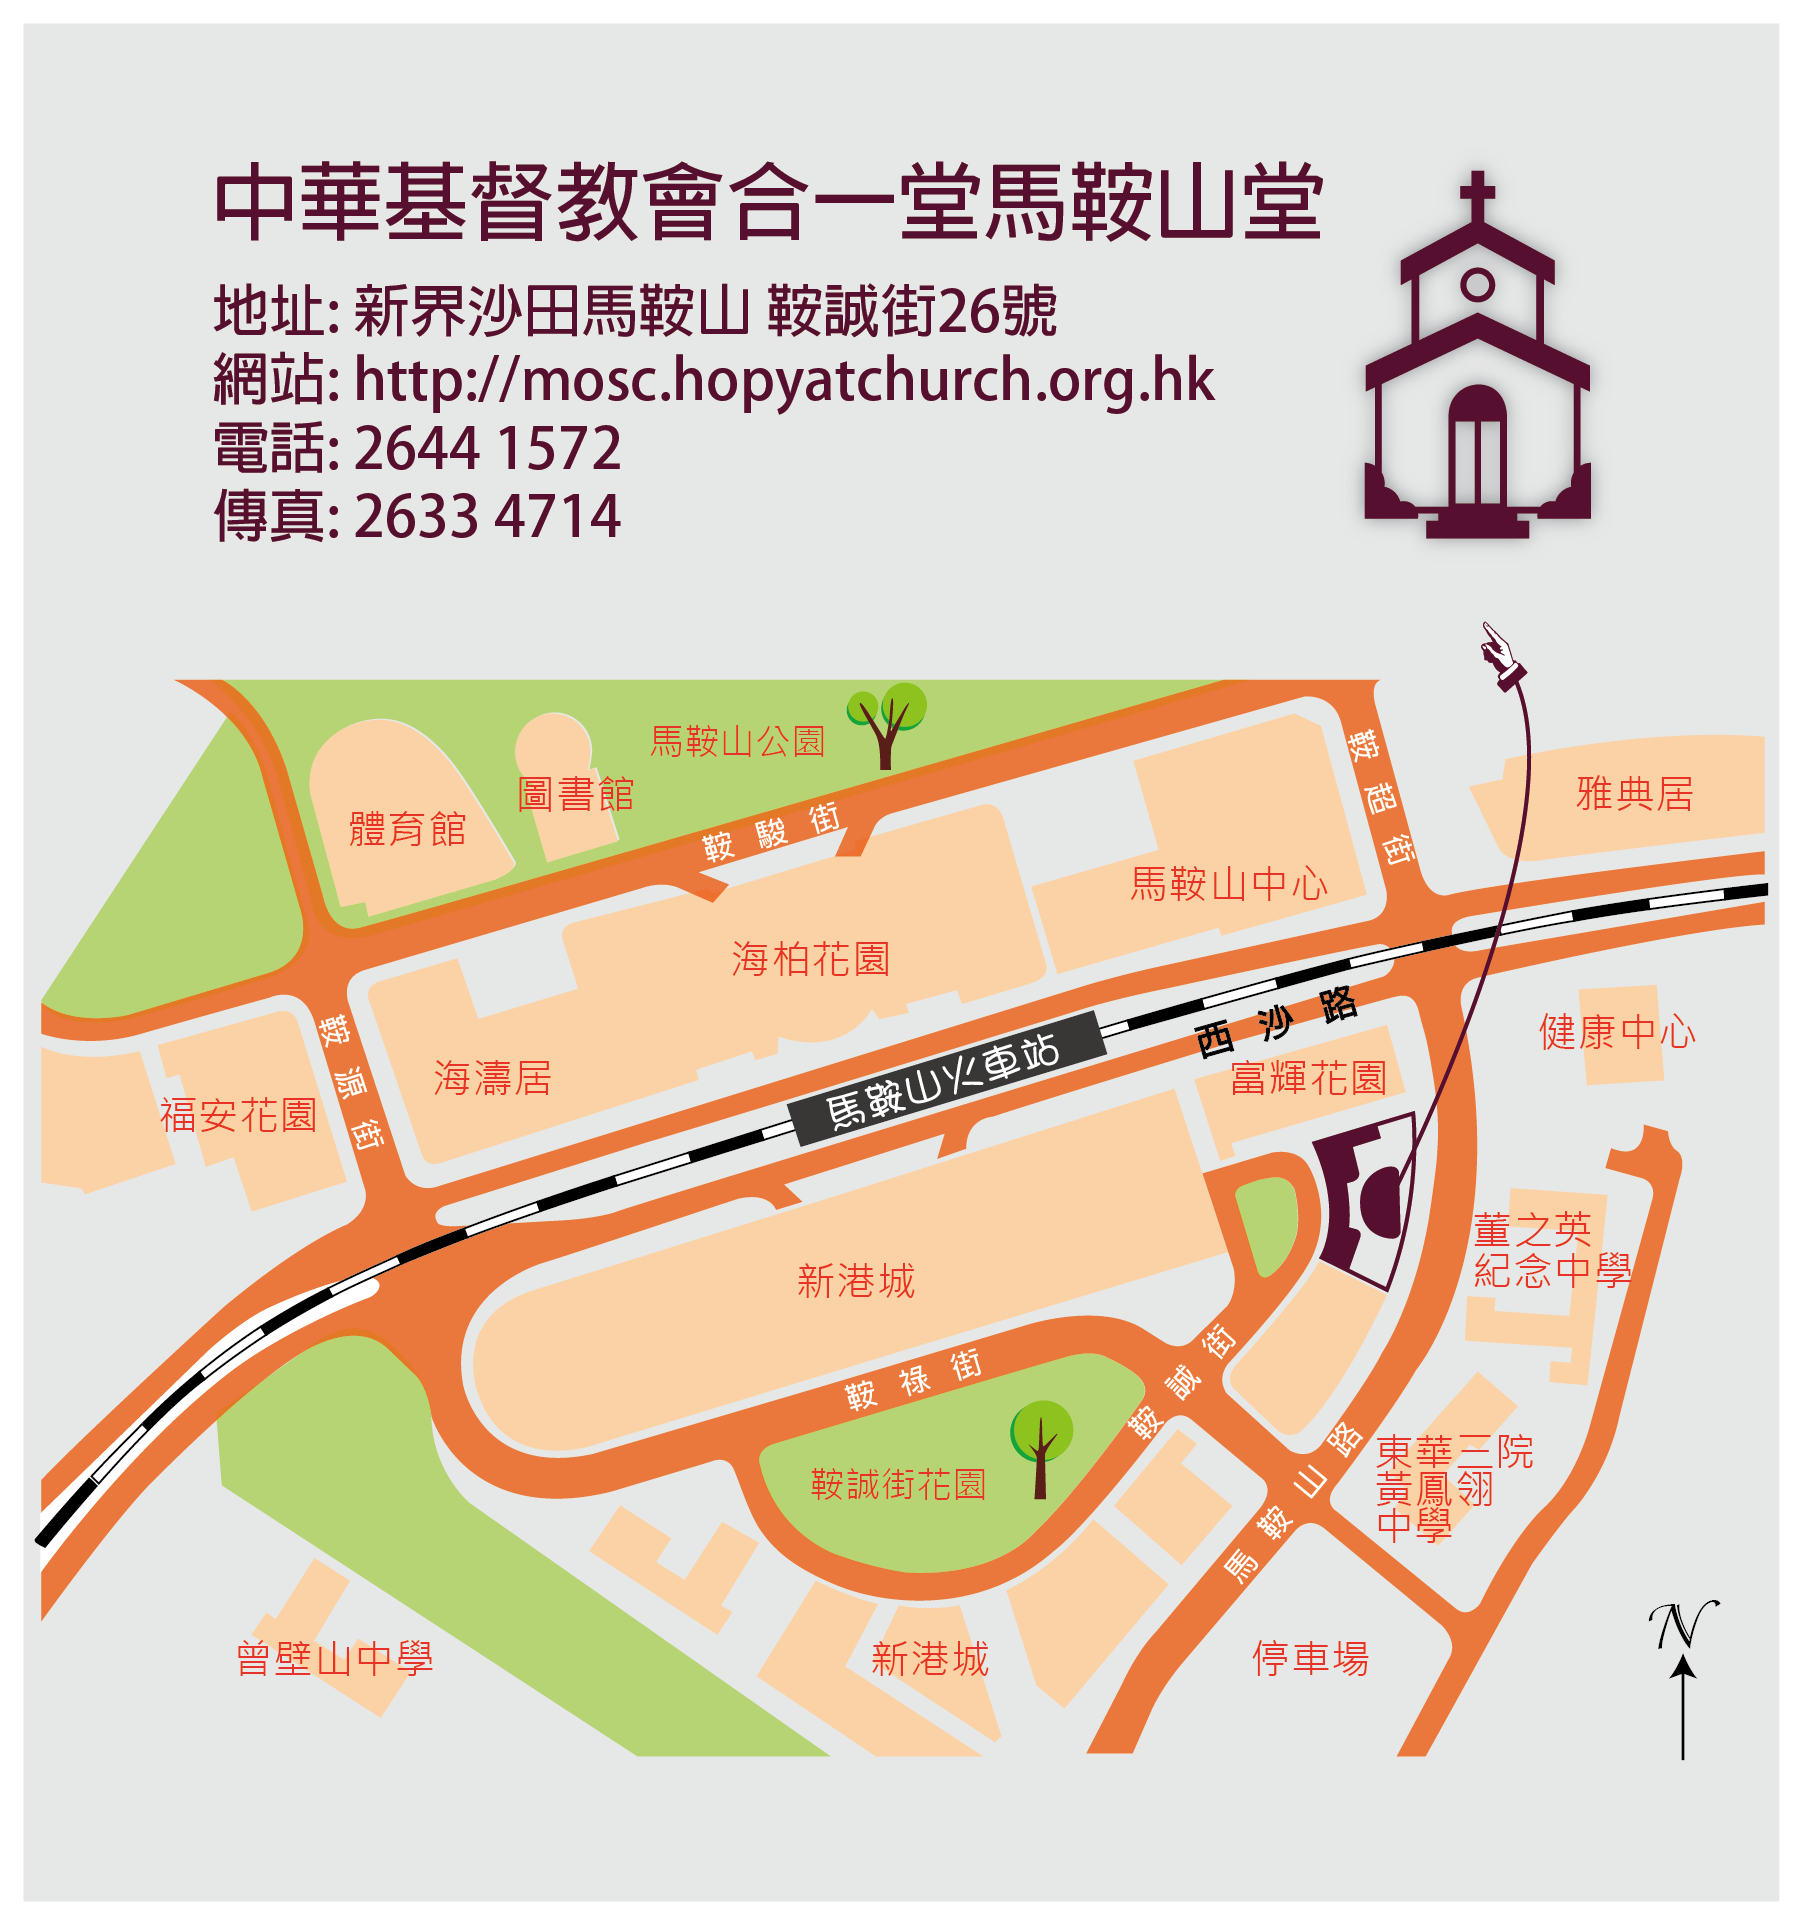 Church Map (26 On Shing Street, Ma On Shan, Hong Kong)